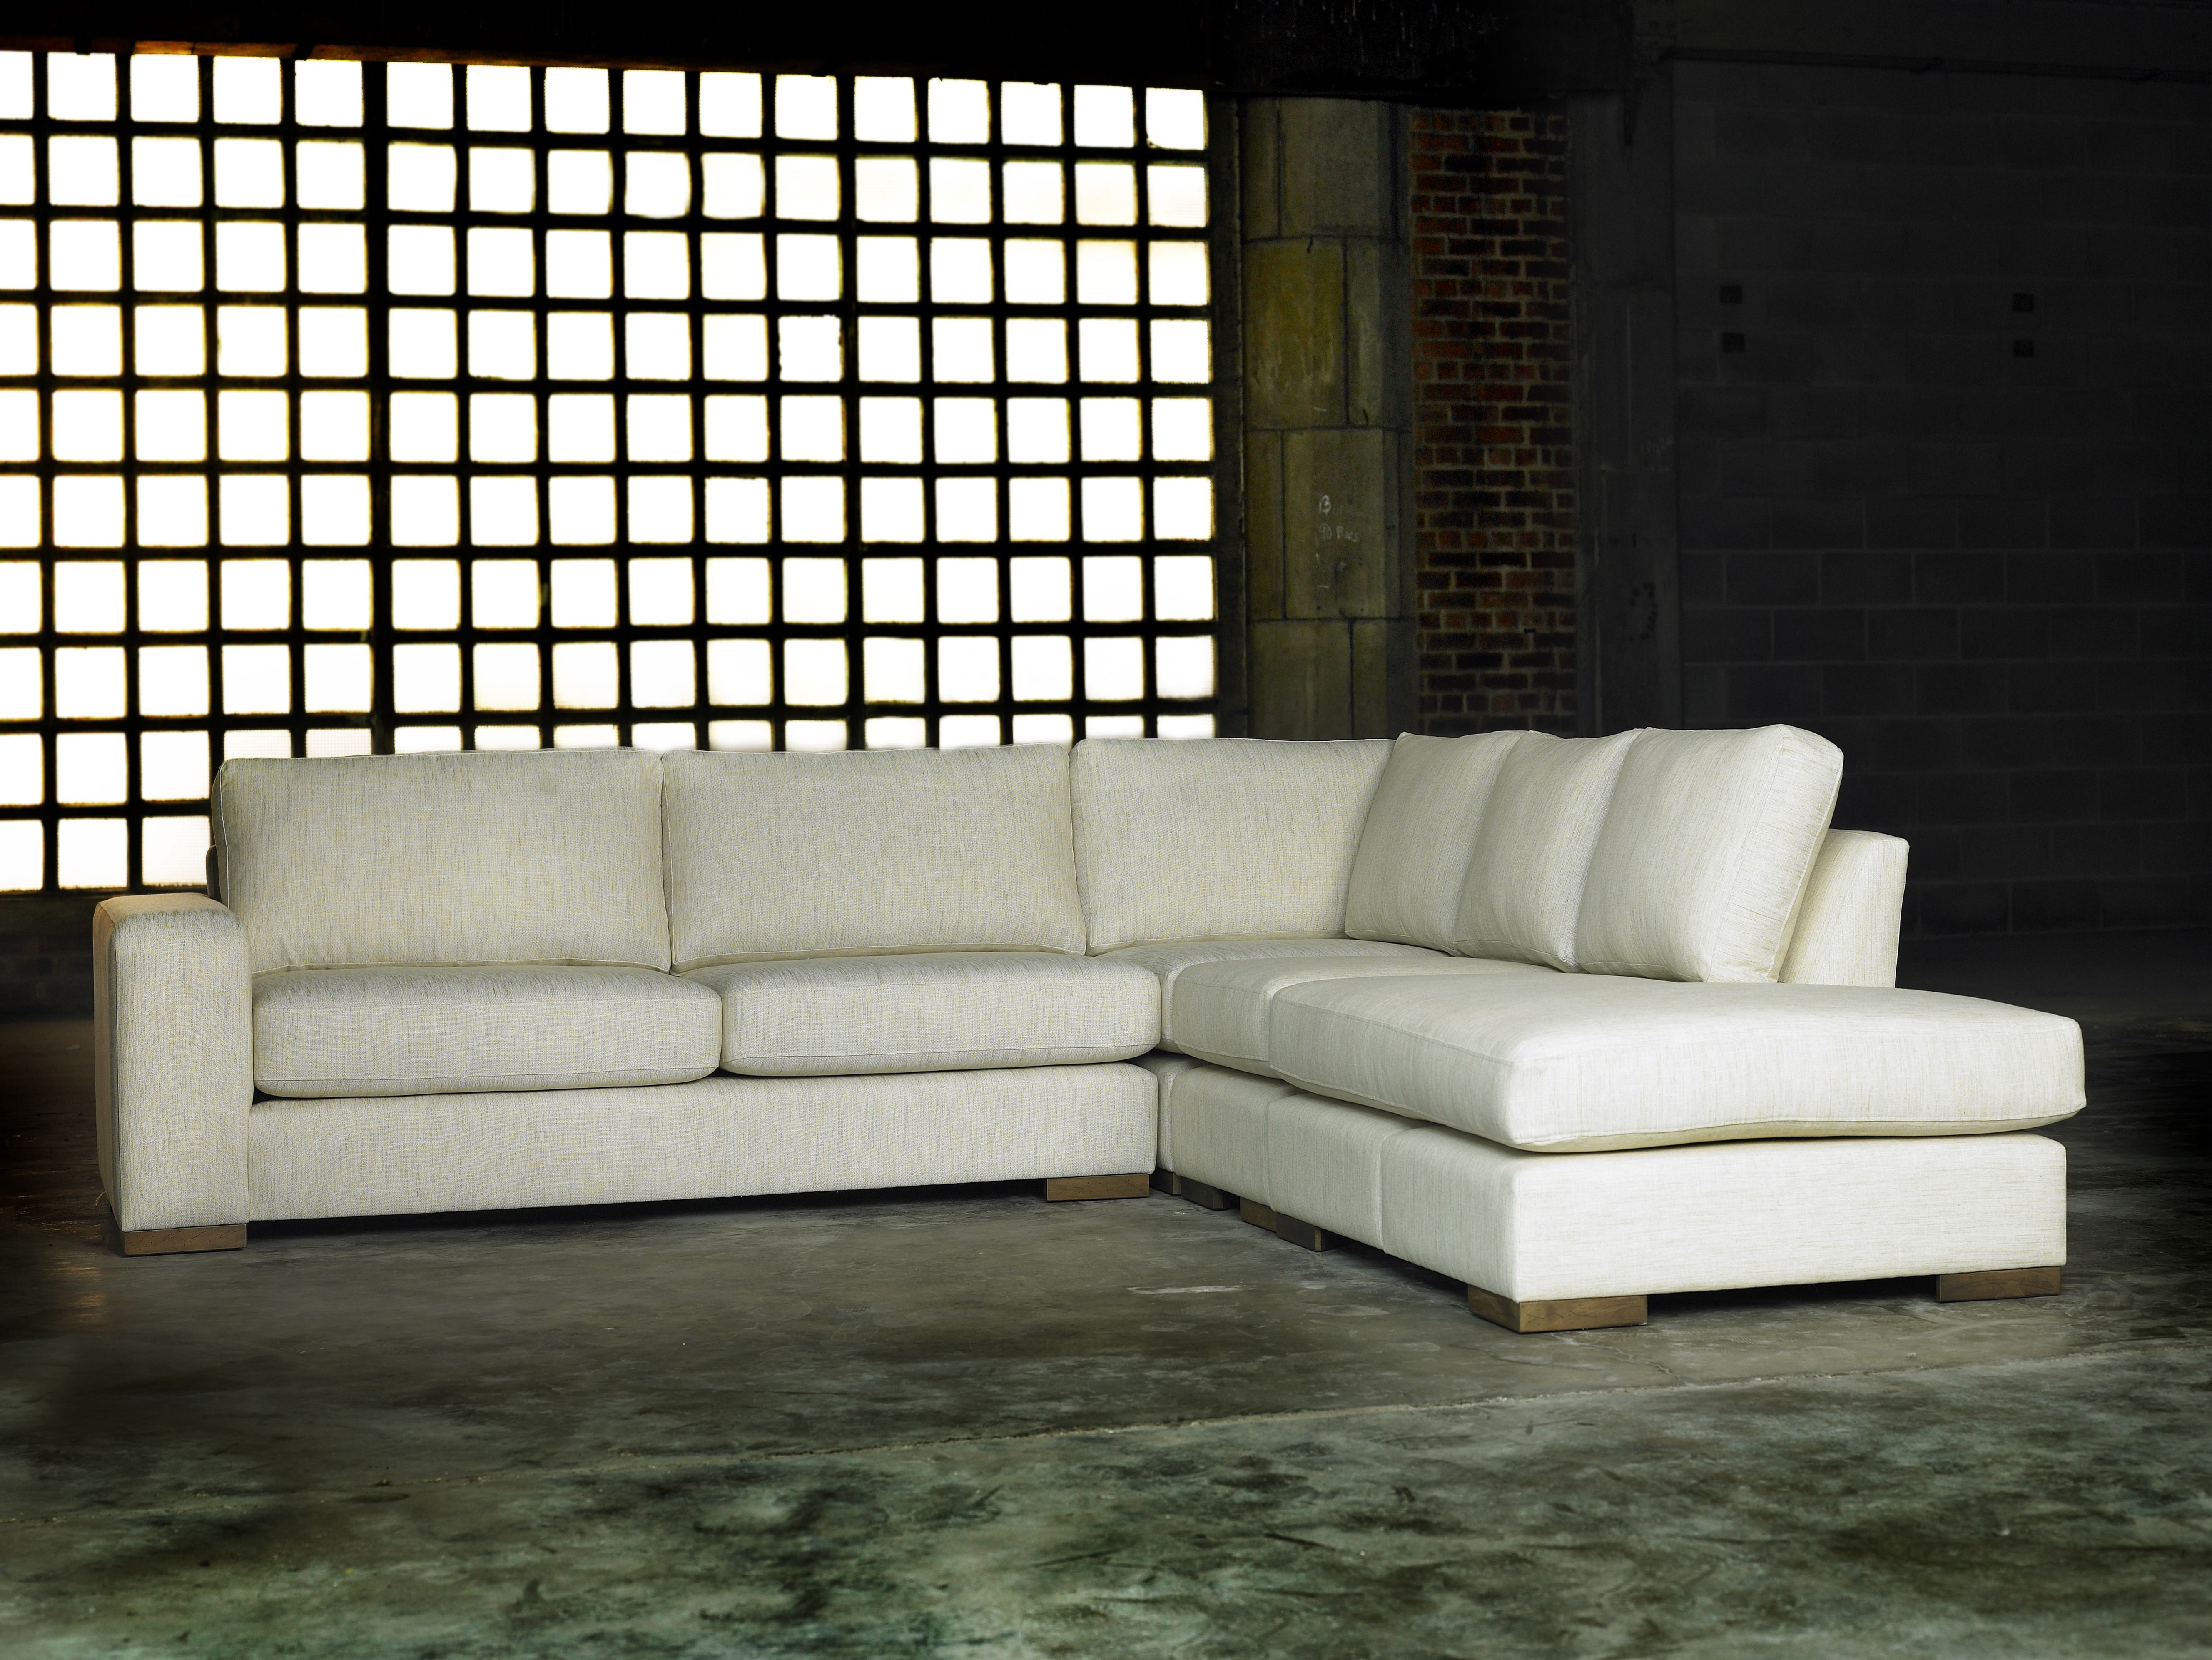 The Prezzo Corner Sofa Low and laid back An Italian inspired